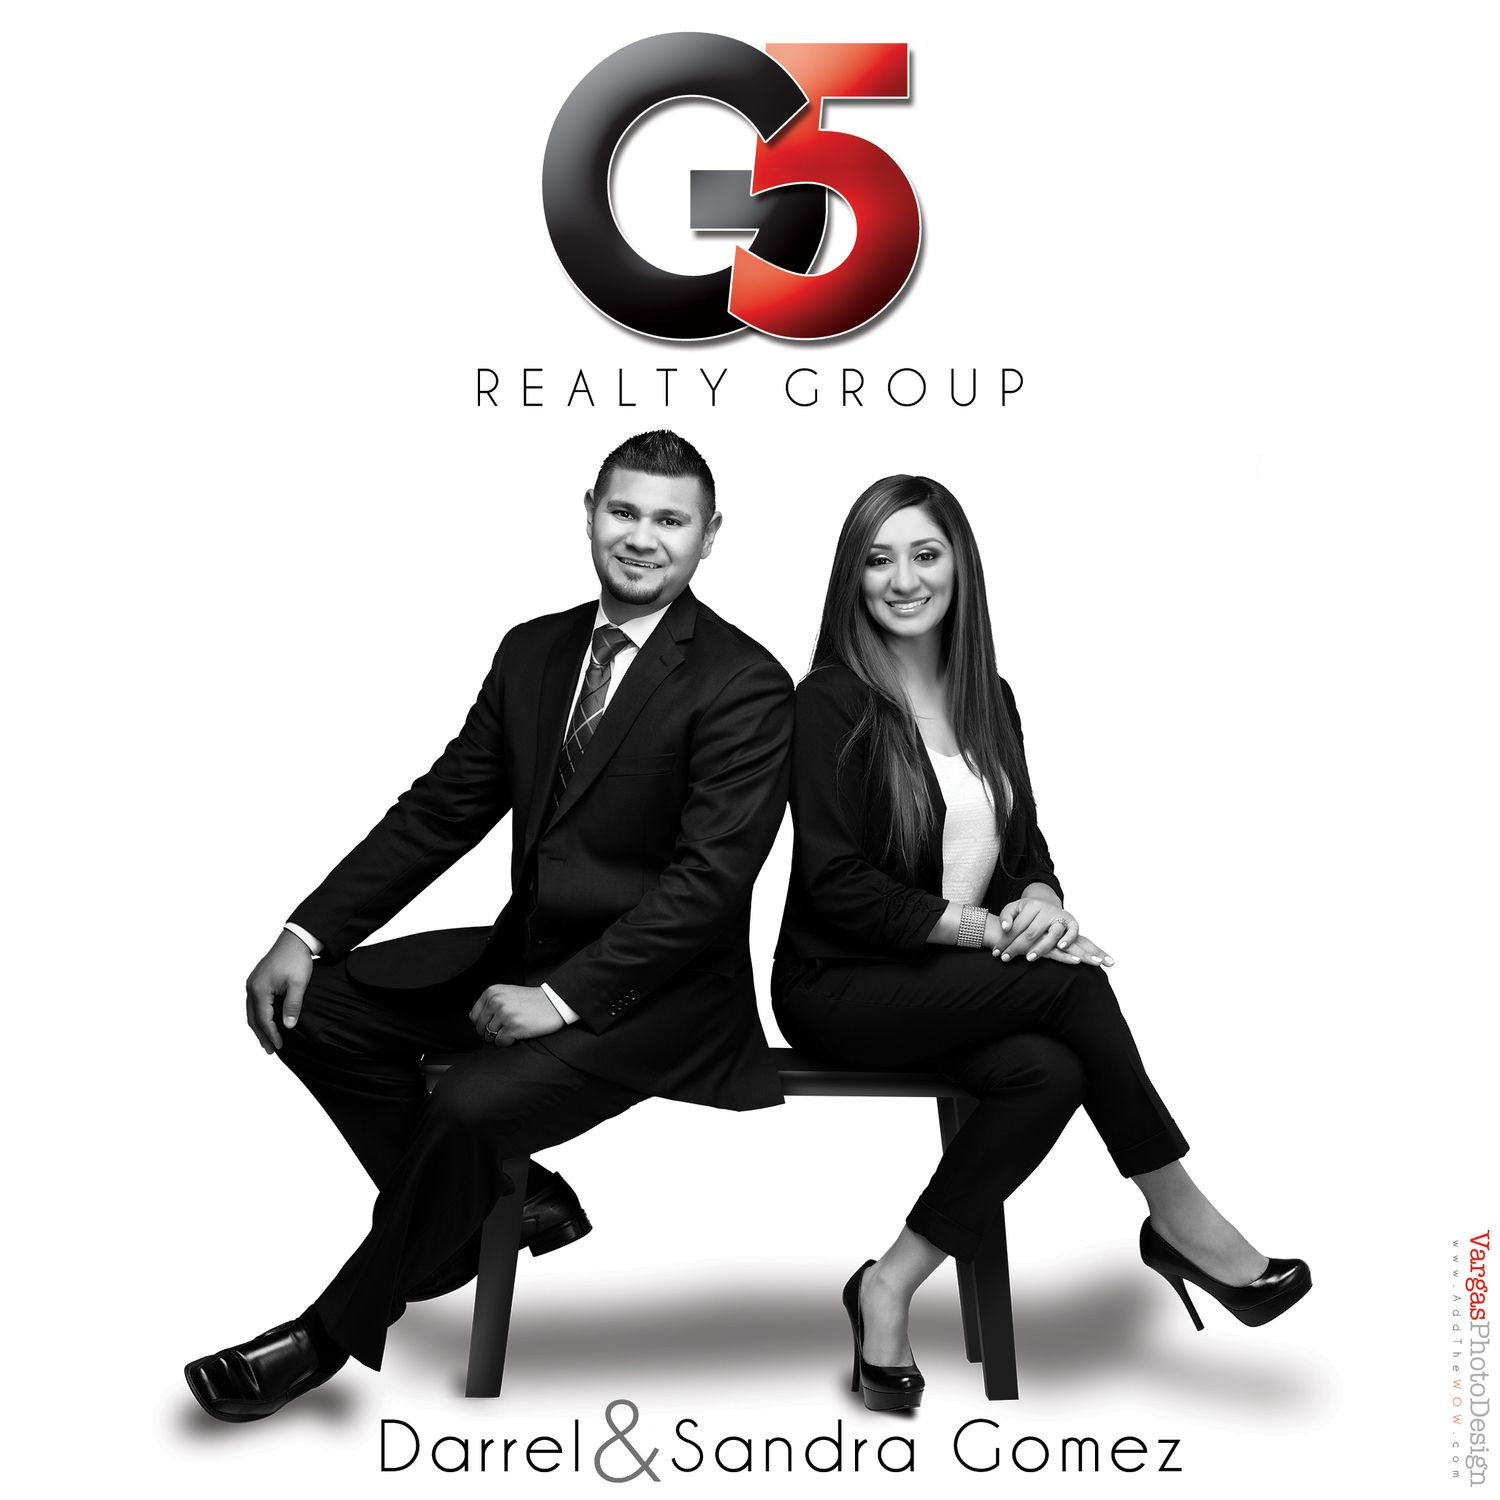 Darrel and sandra gomez real estate branding photography head shots and business portraits for realtors real estate agents and industry professionals based in corona california and realtor branding through reheart Image collections